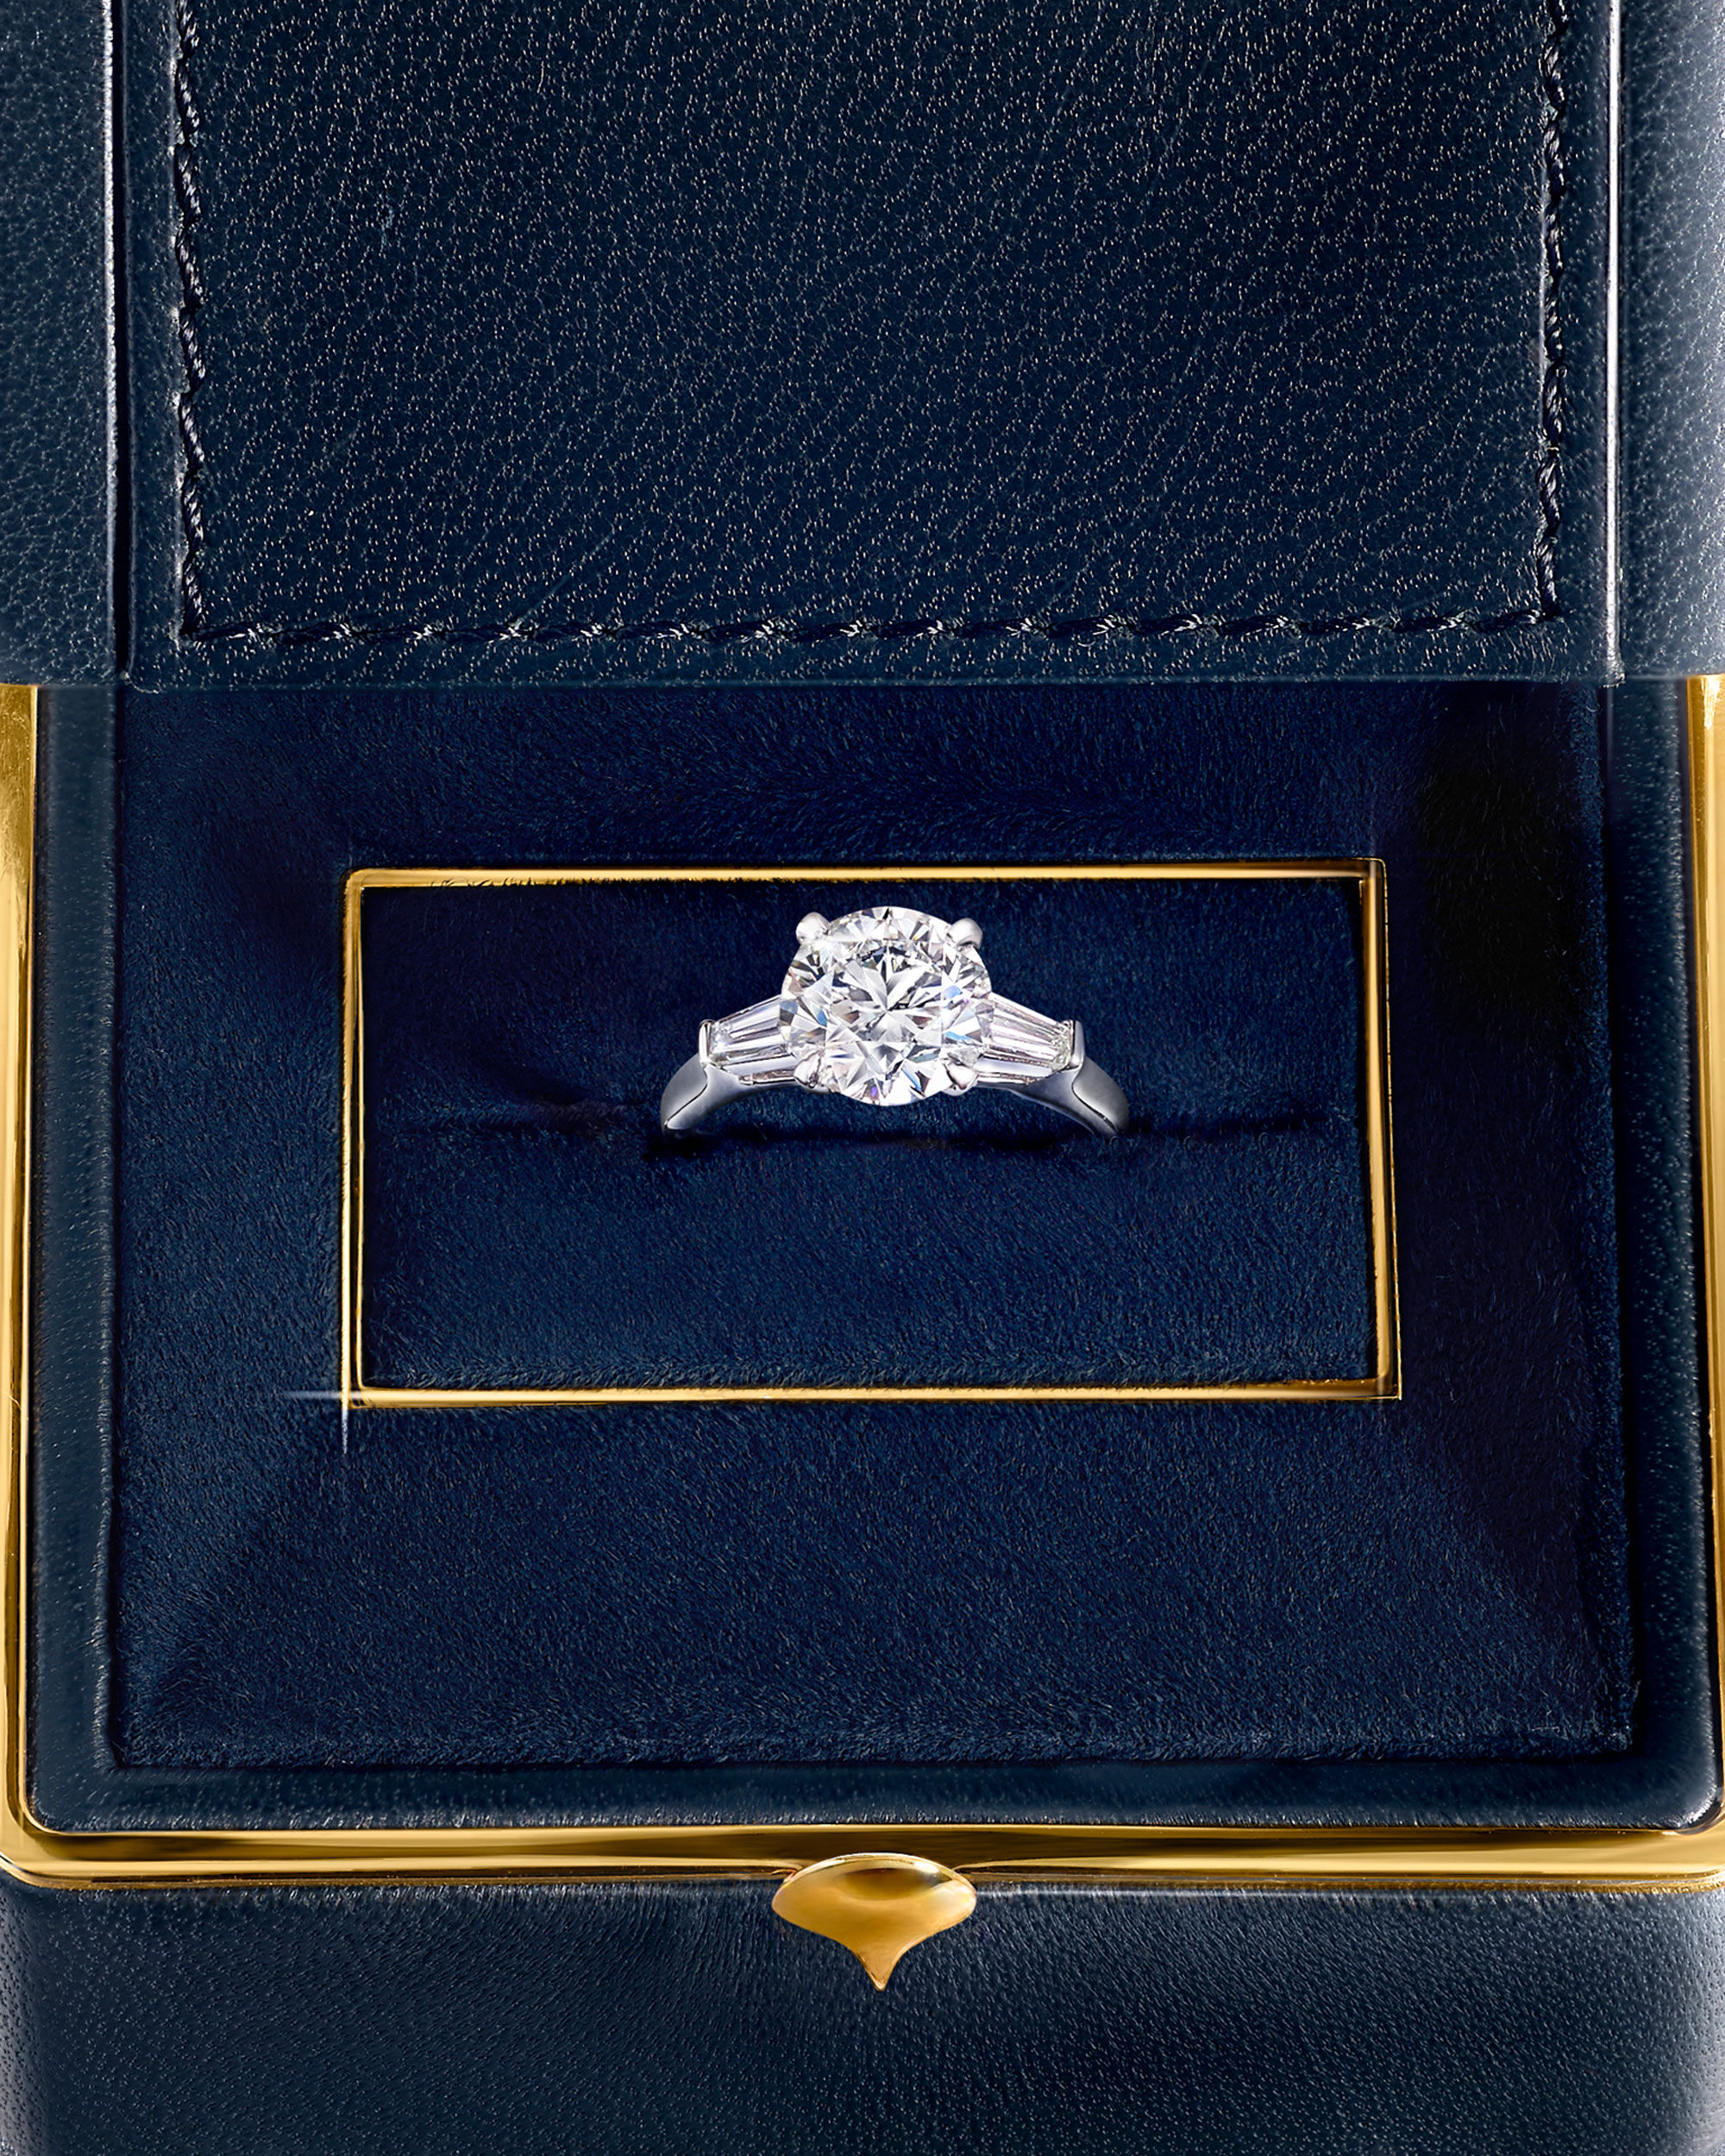 Close up of a Graff diamond engagement ring in a jewellery box